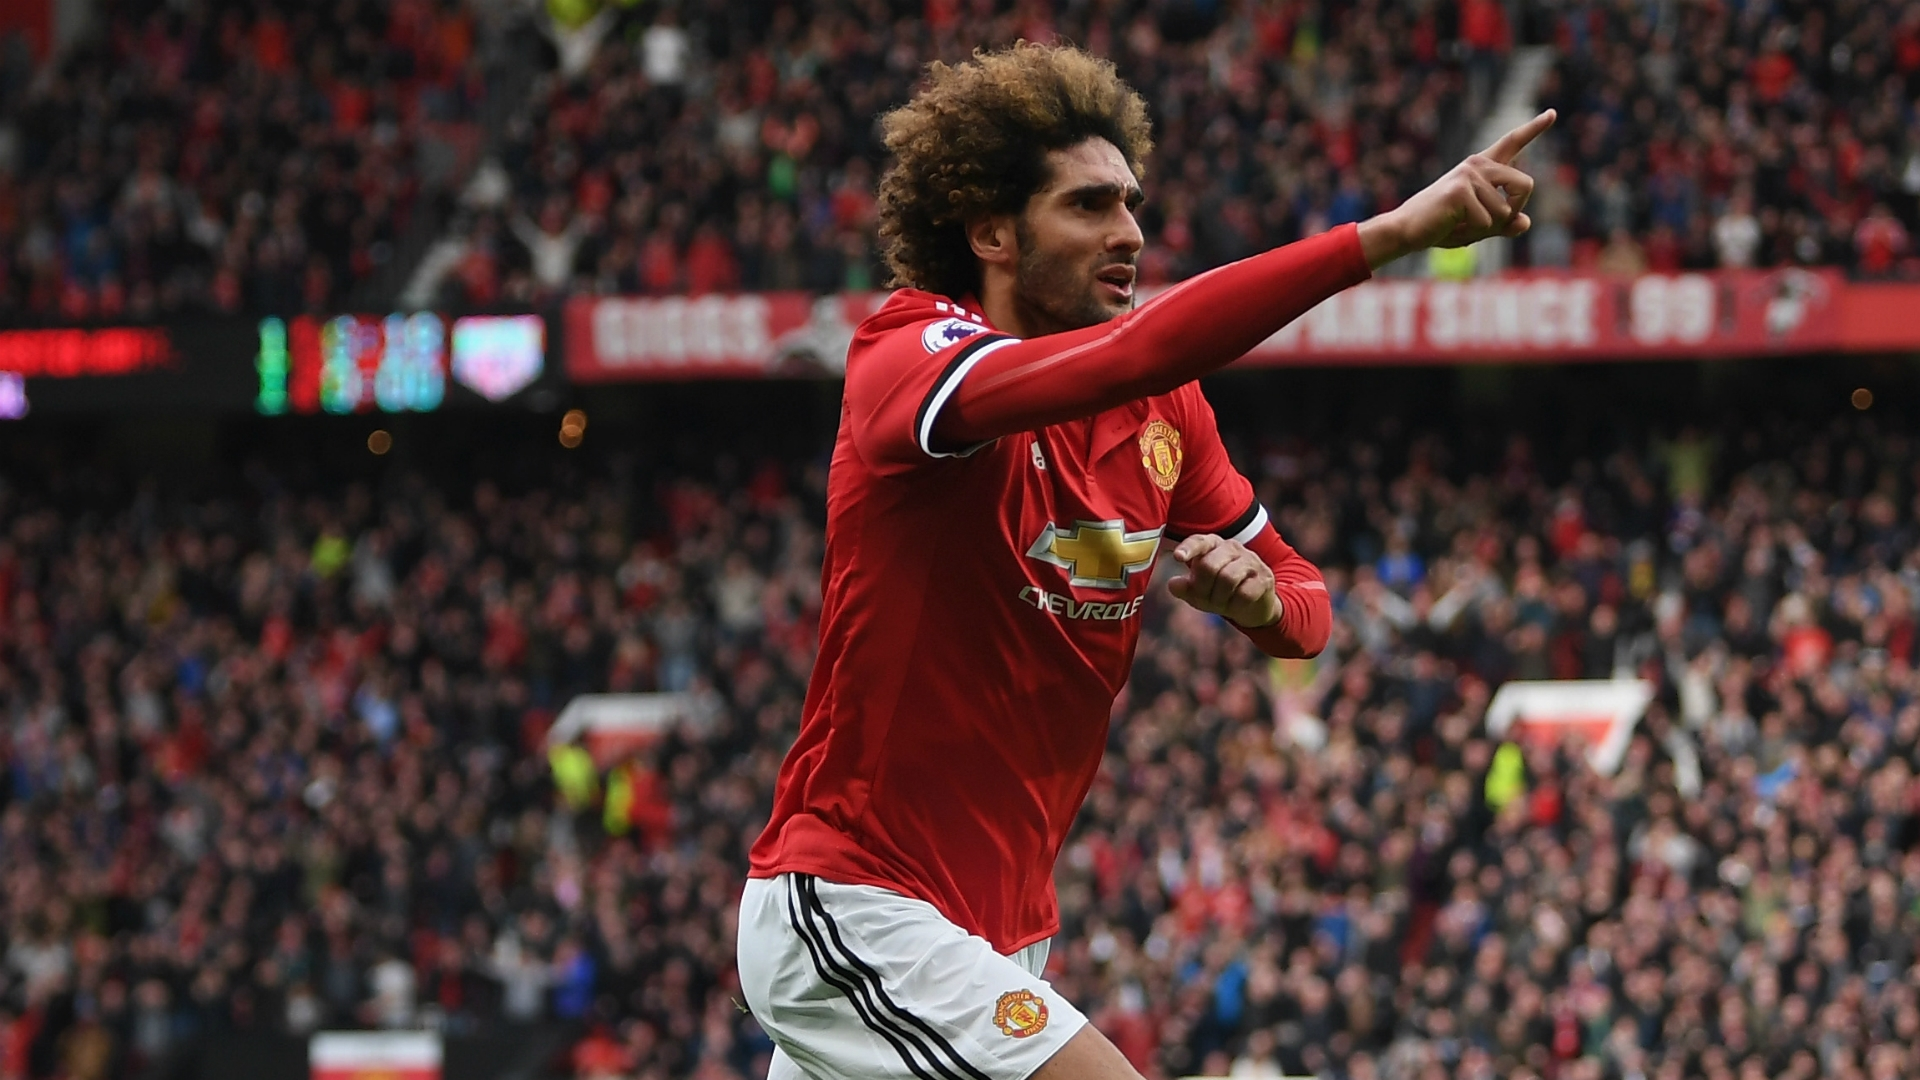 M. Fellaini not expected to renew contract with Manchester United